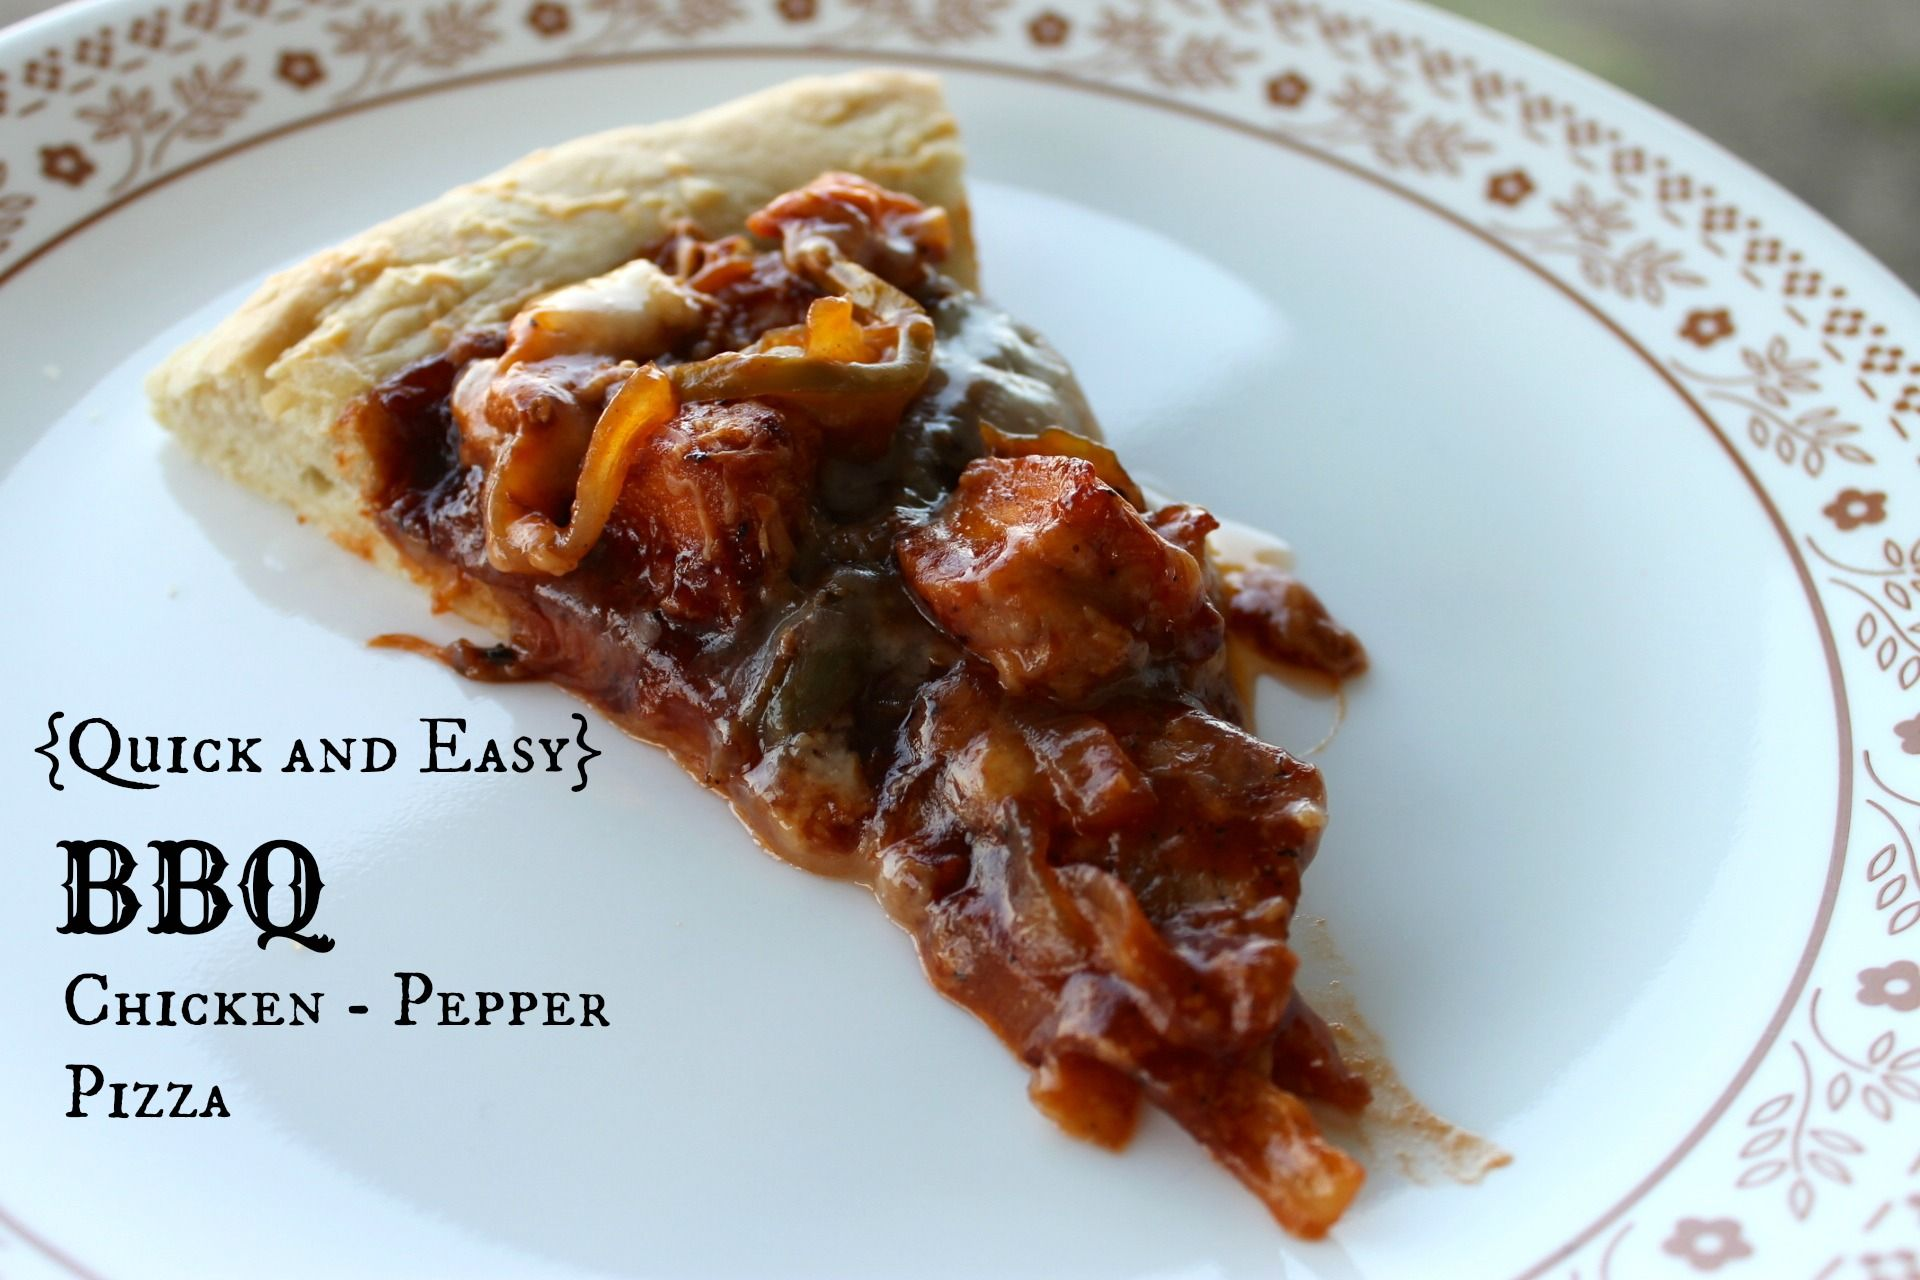 Quick and Easy BBQ Chicken - Pepper Pizza {Prairie Gal Cookin'}  Step-by-Step pictures and recipe too!